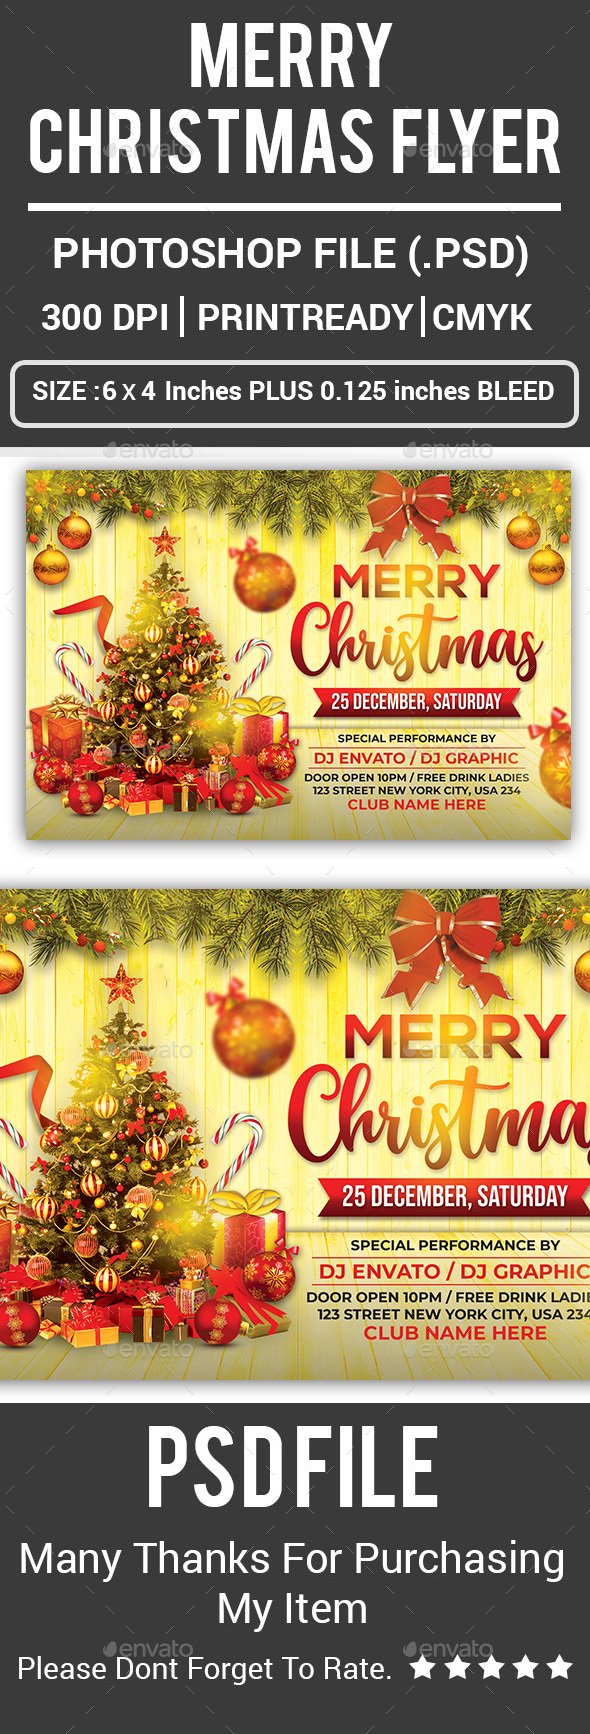 Flyers PSD – Merry Christmas Flyer – Download